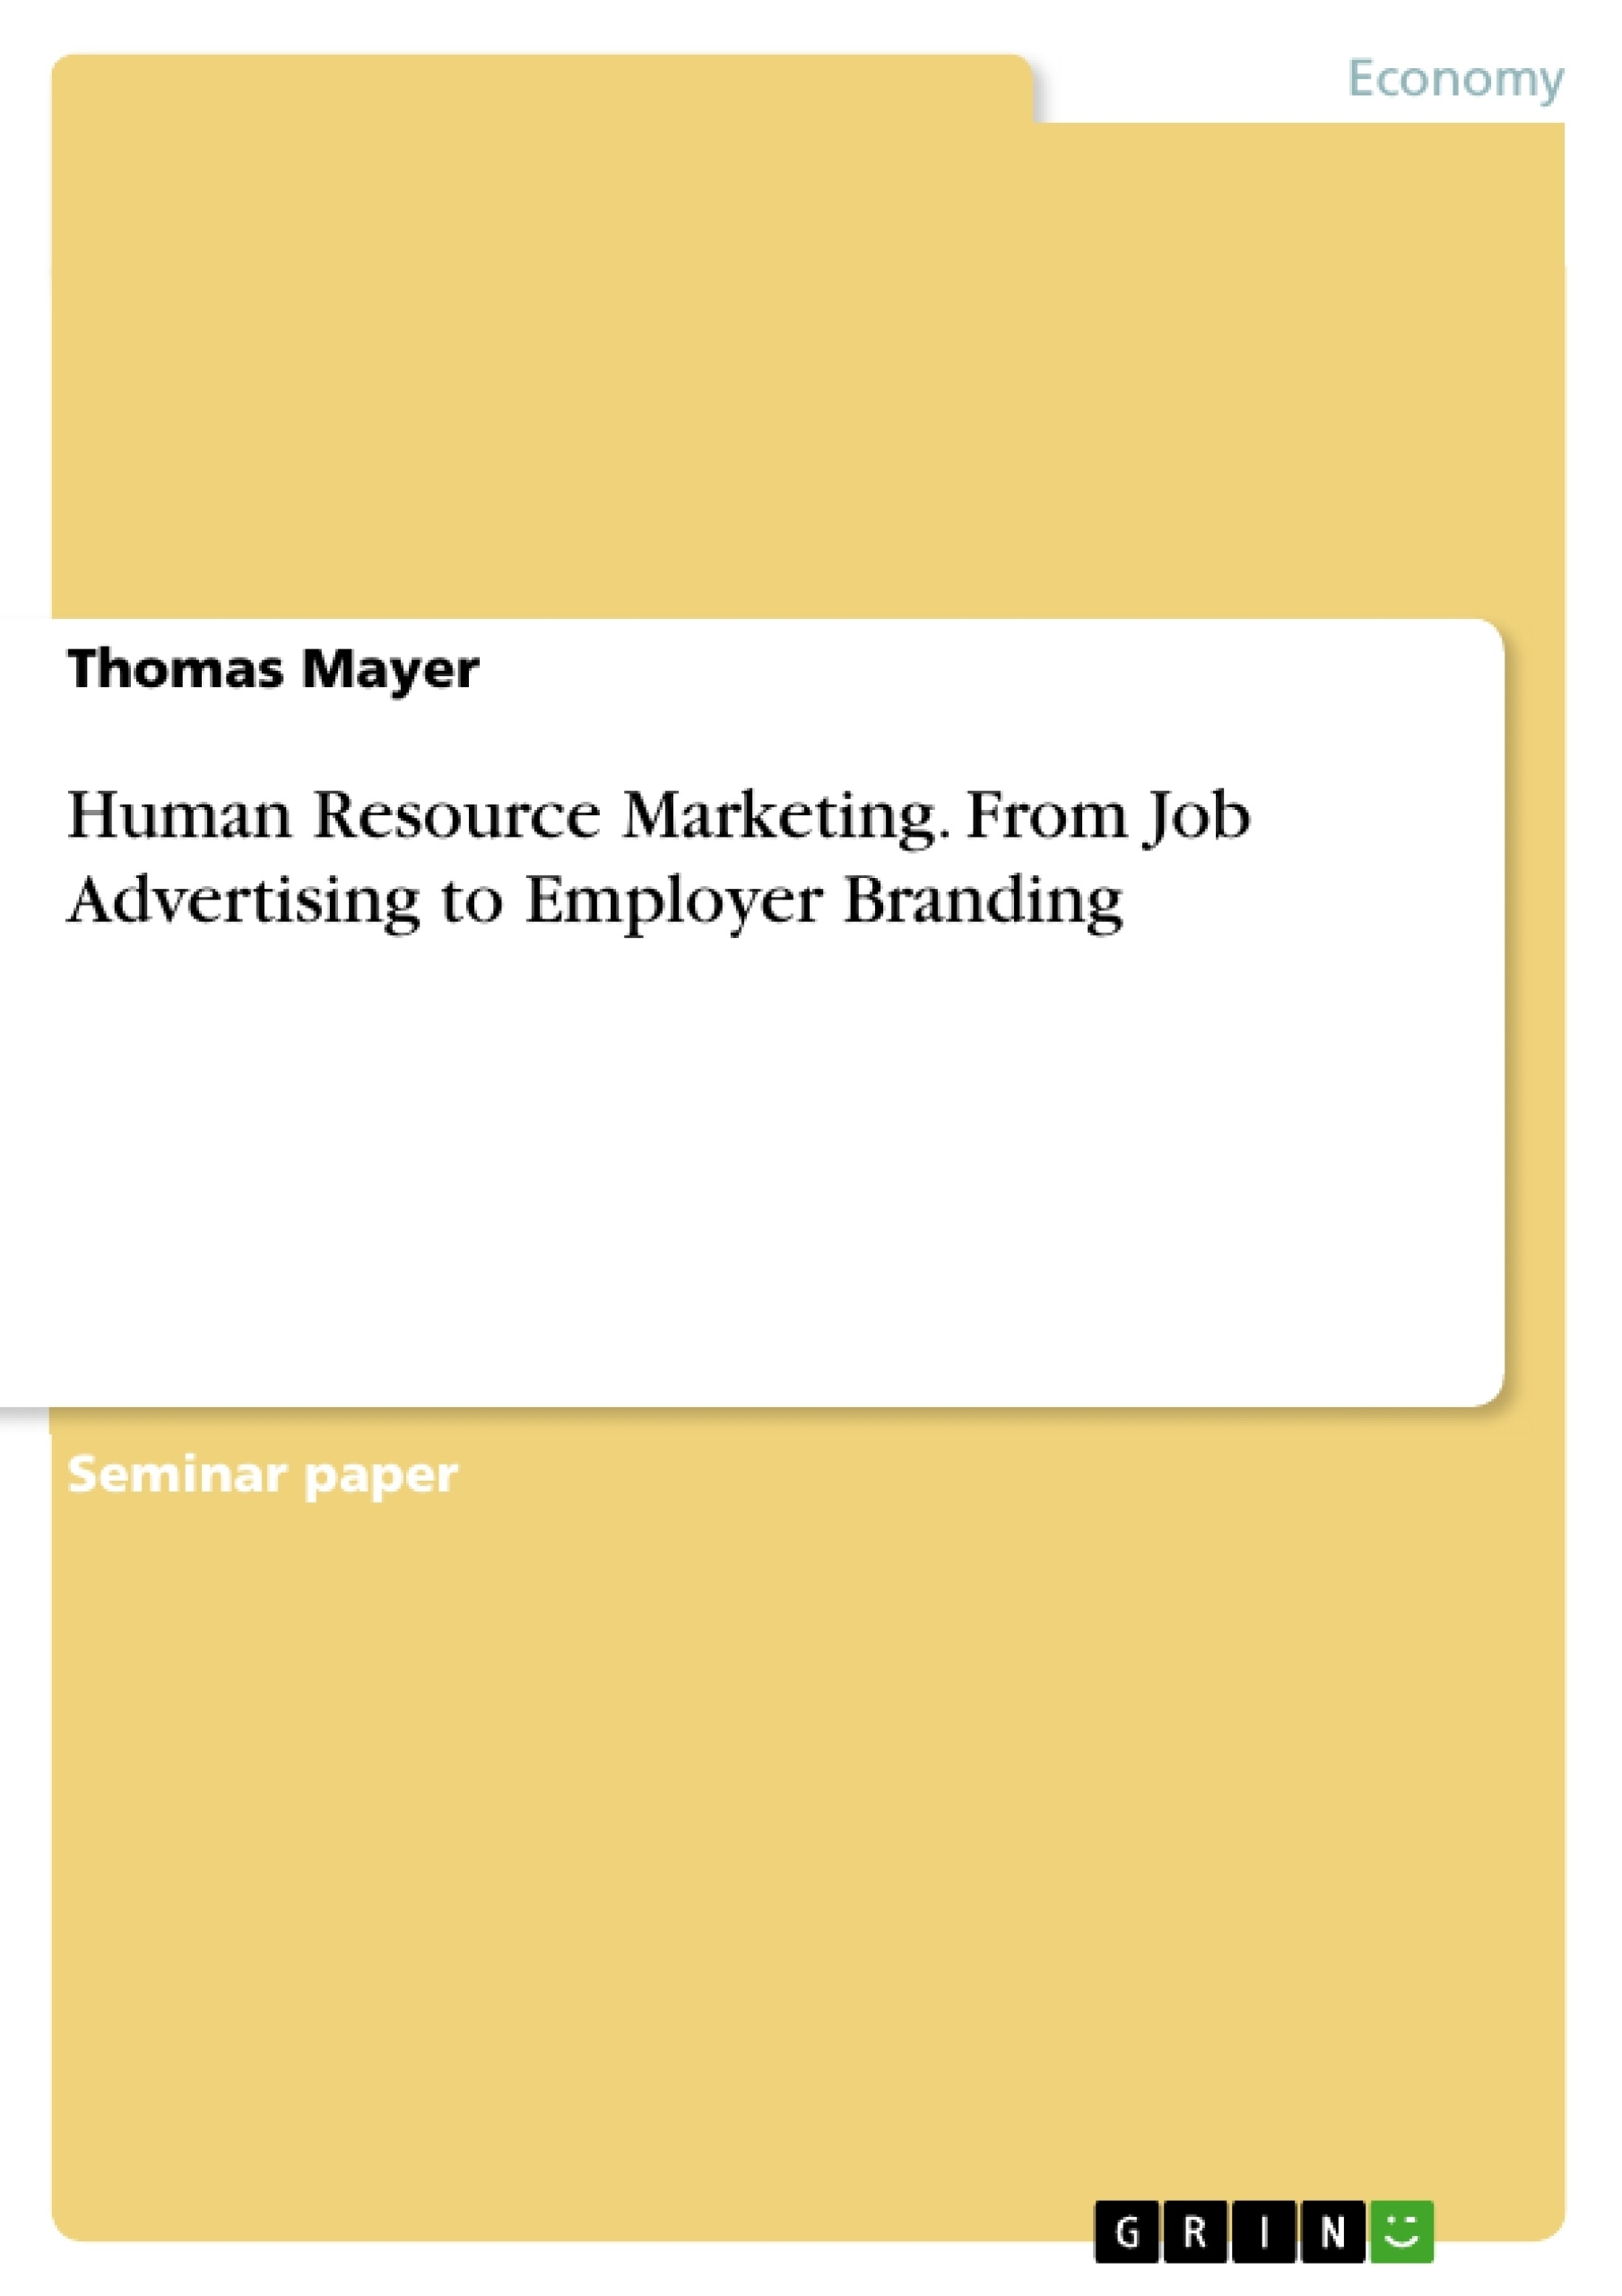 Title: Human Resource Marketing. From Job Advertising to Employer Branding